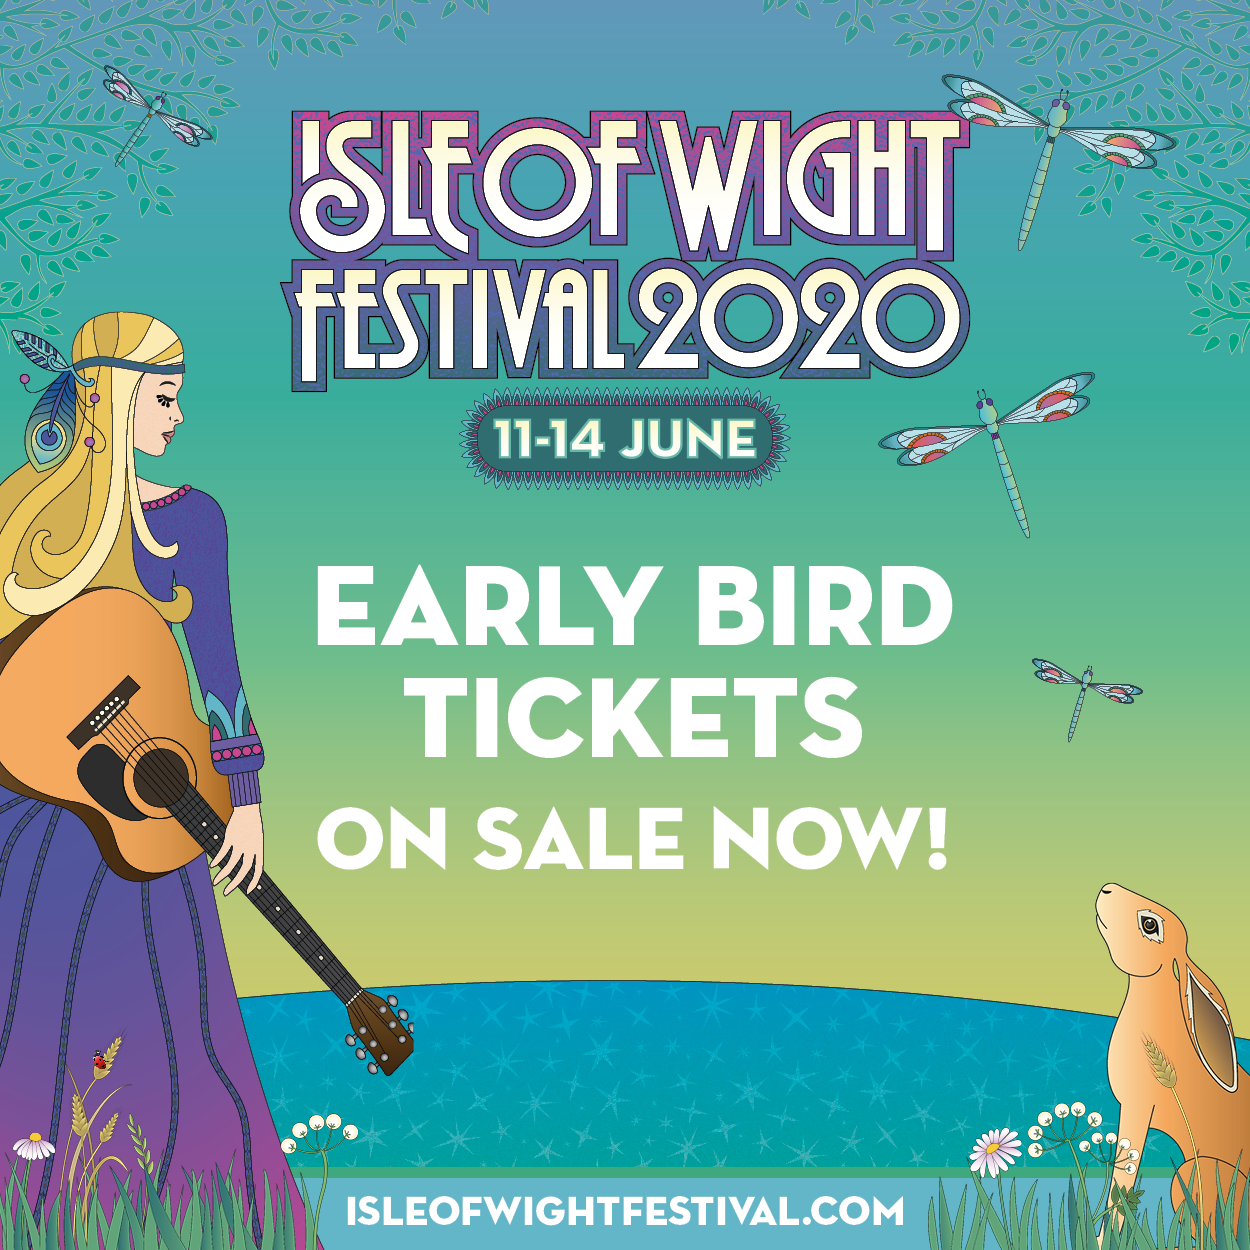 Isle of Wight Festival Announces 2020 Dates & Early Bird